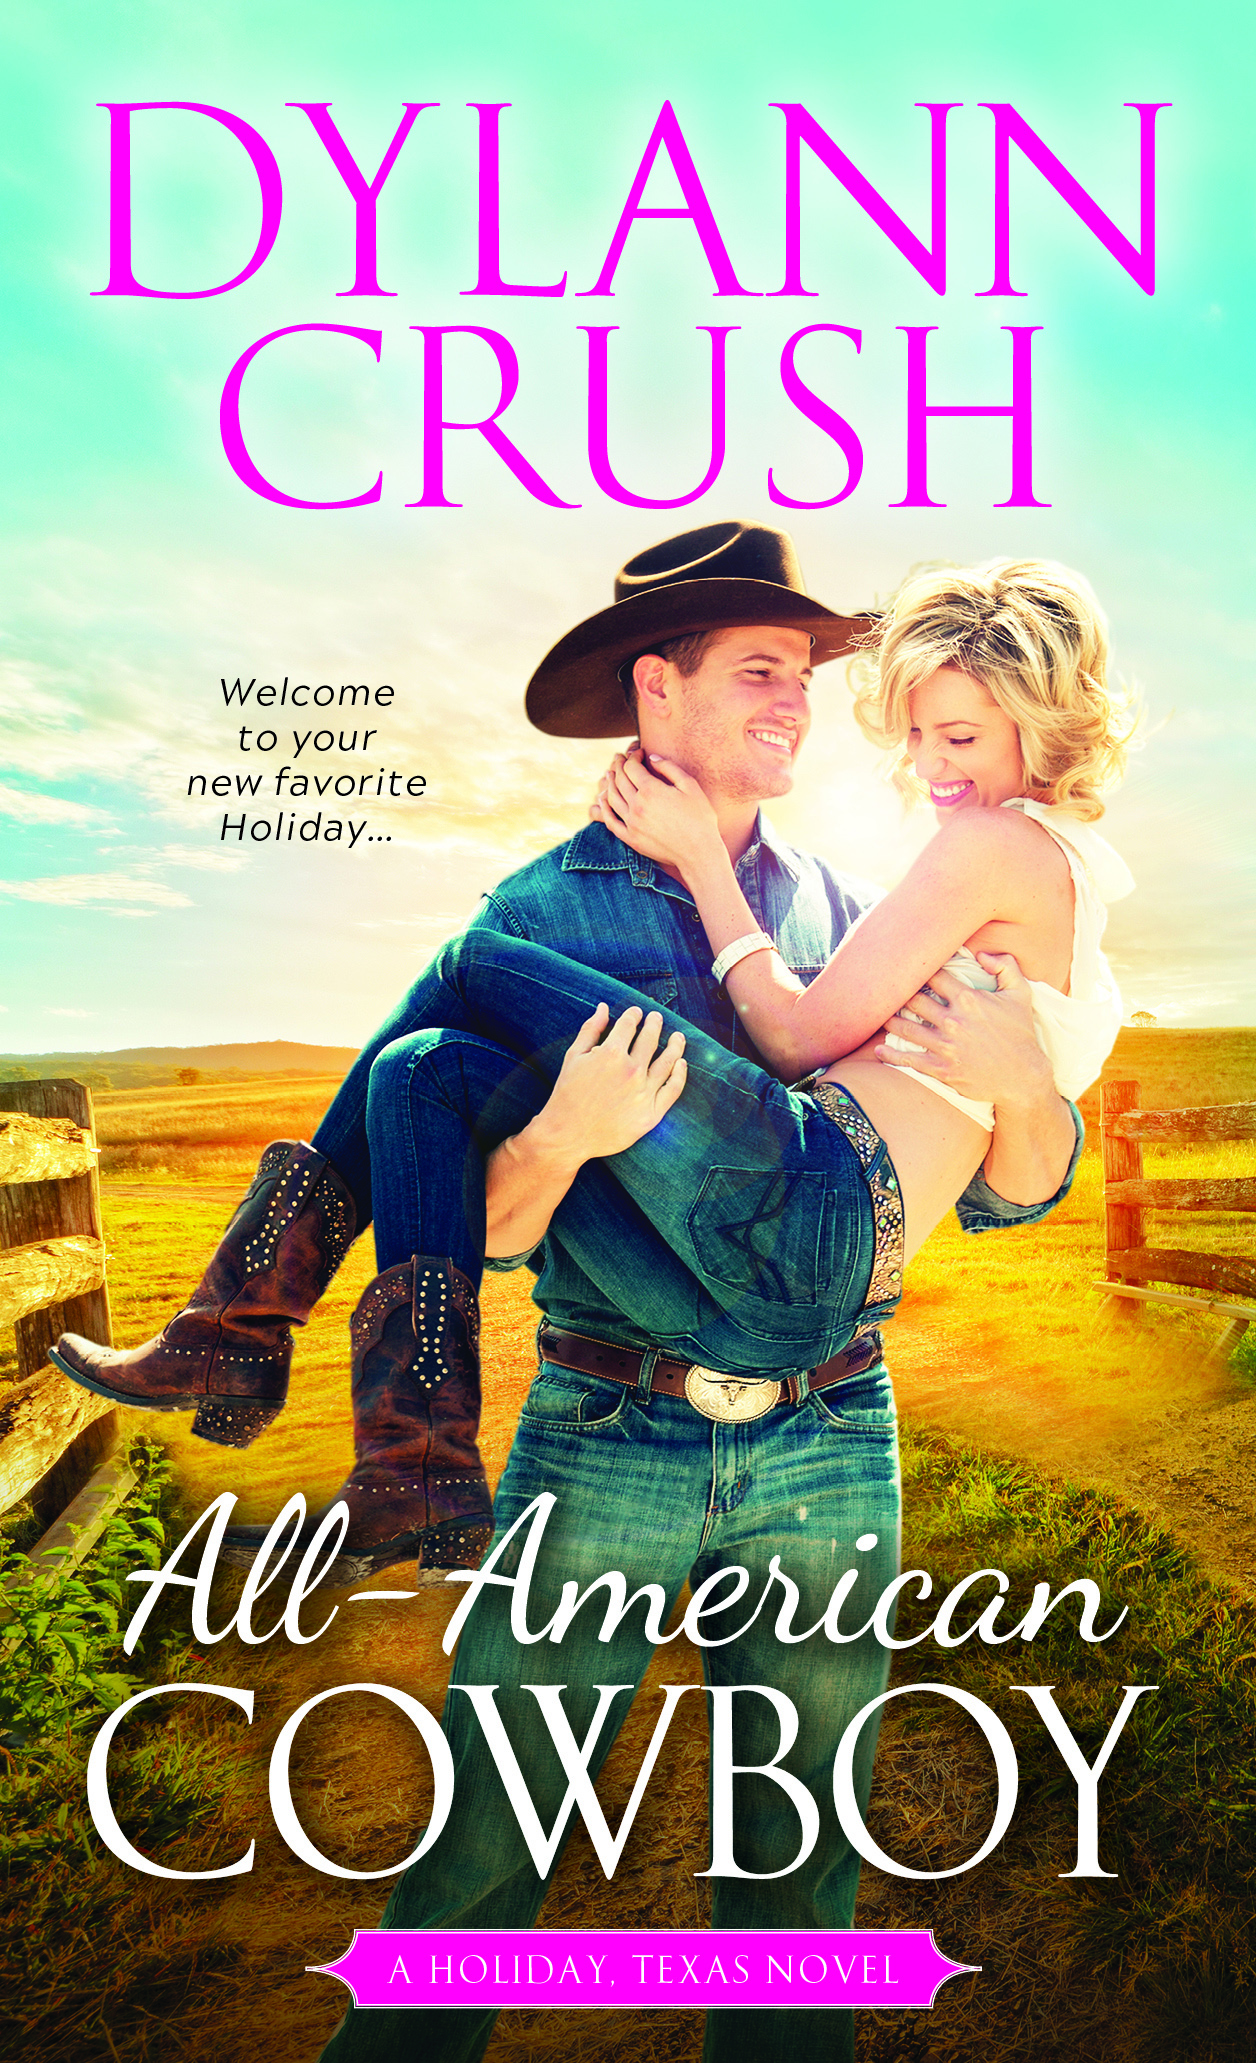 All-American Cowboy is Ready for Reviews!